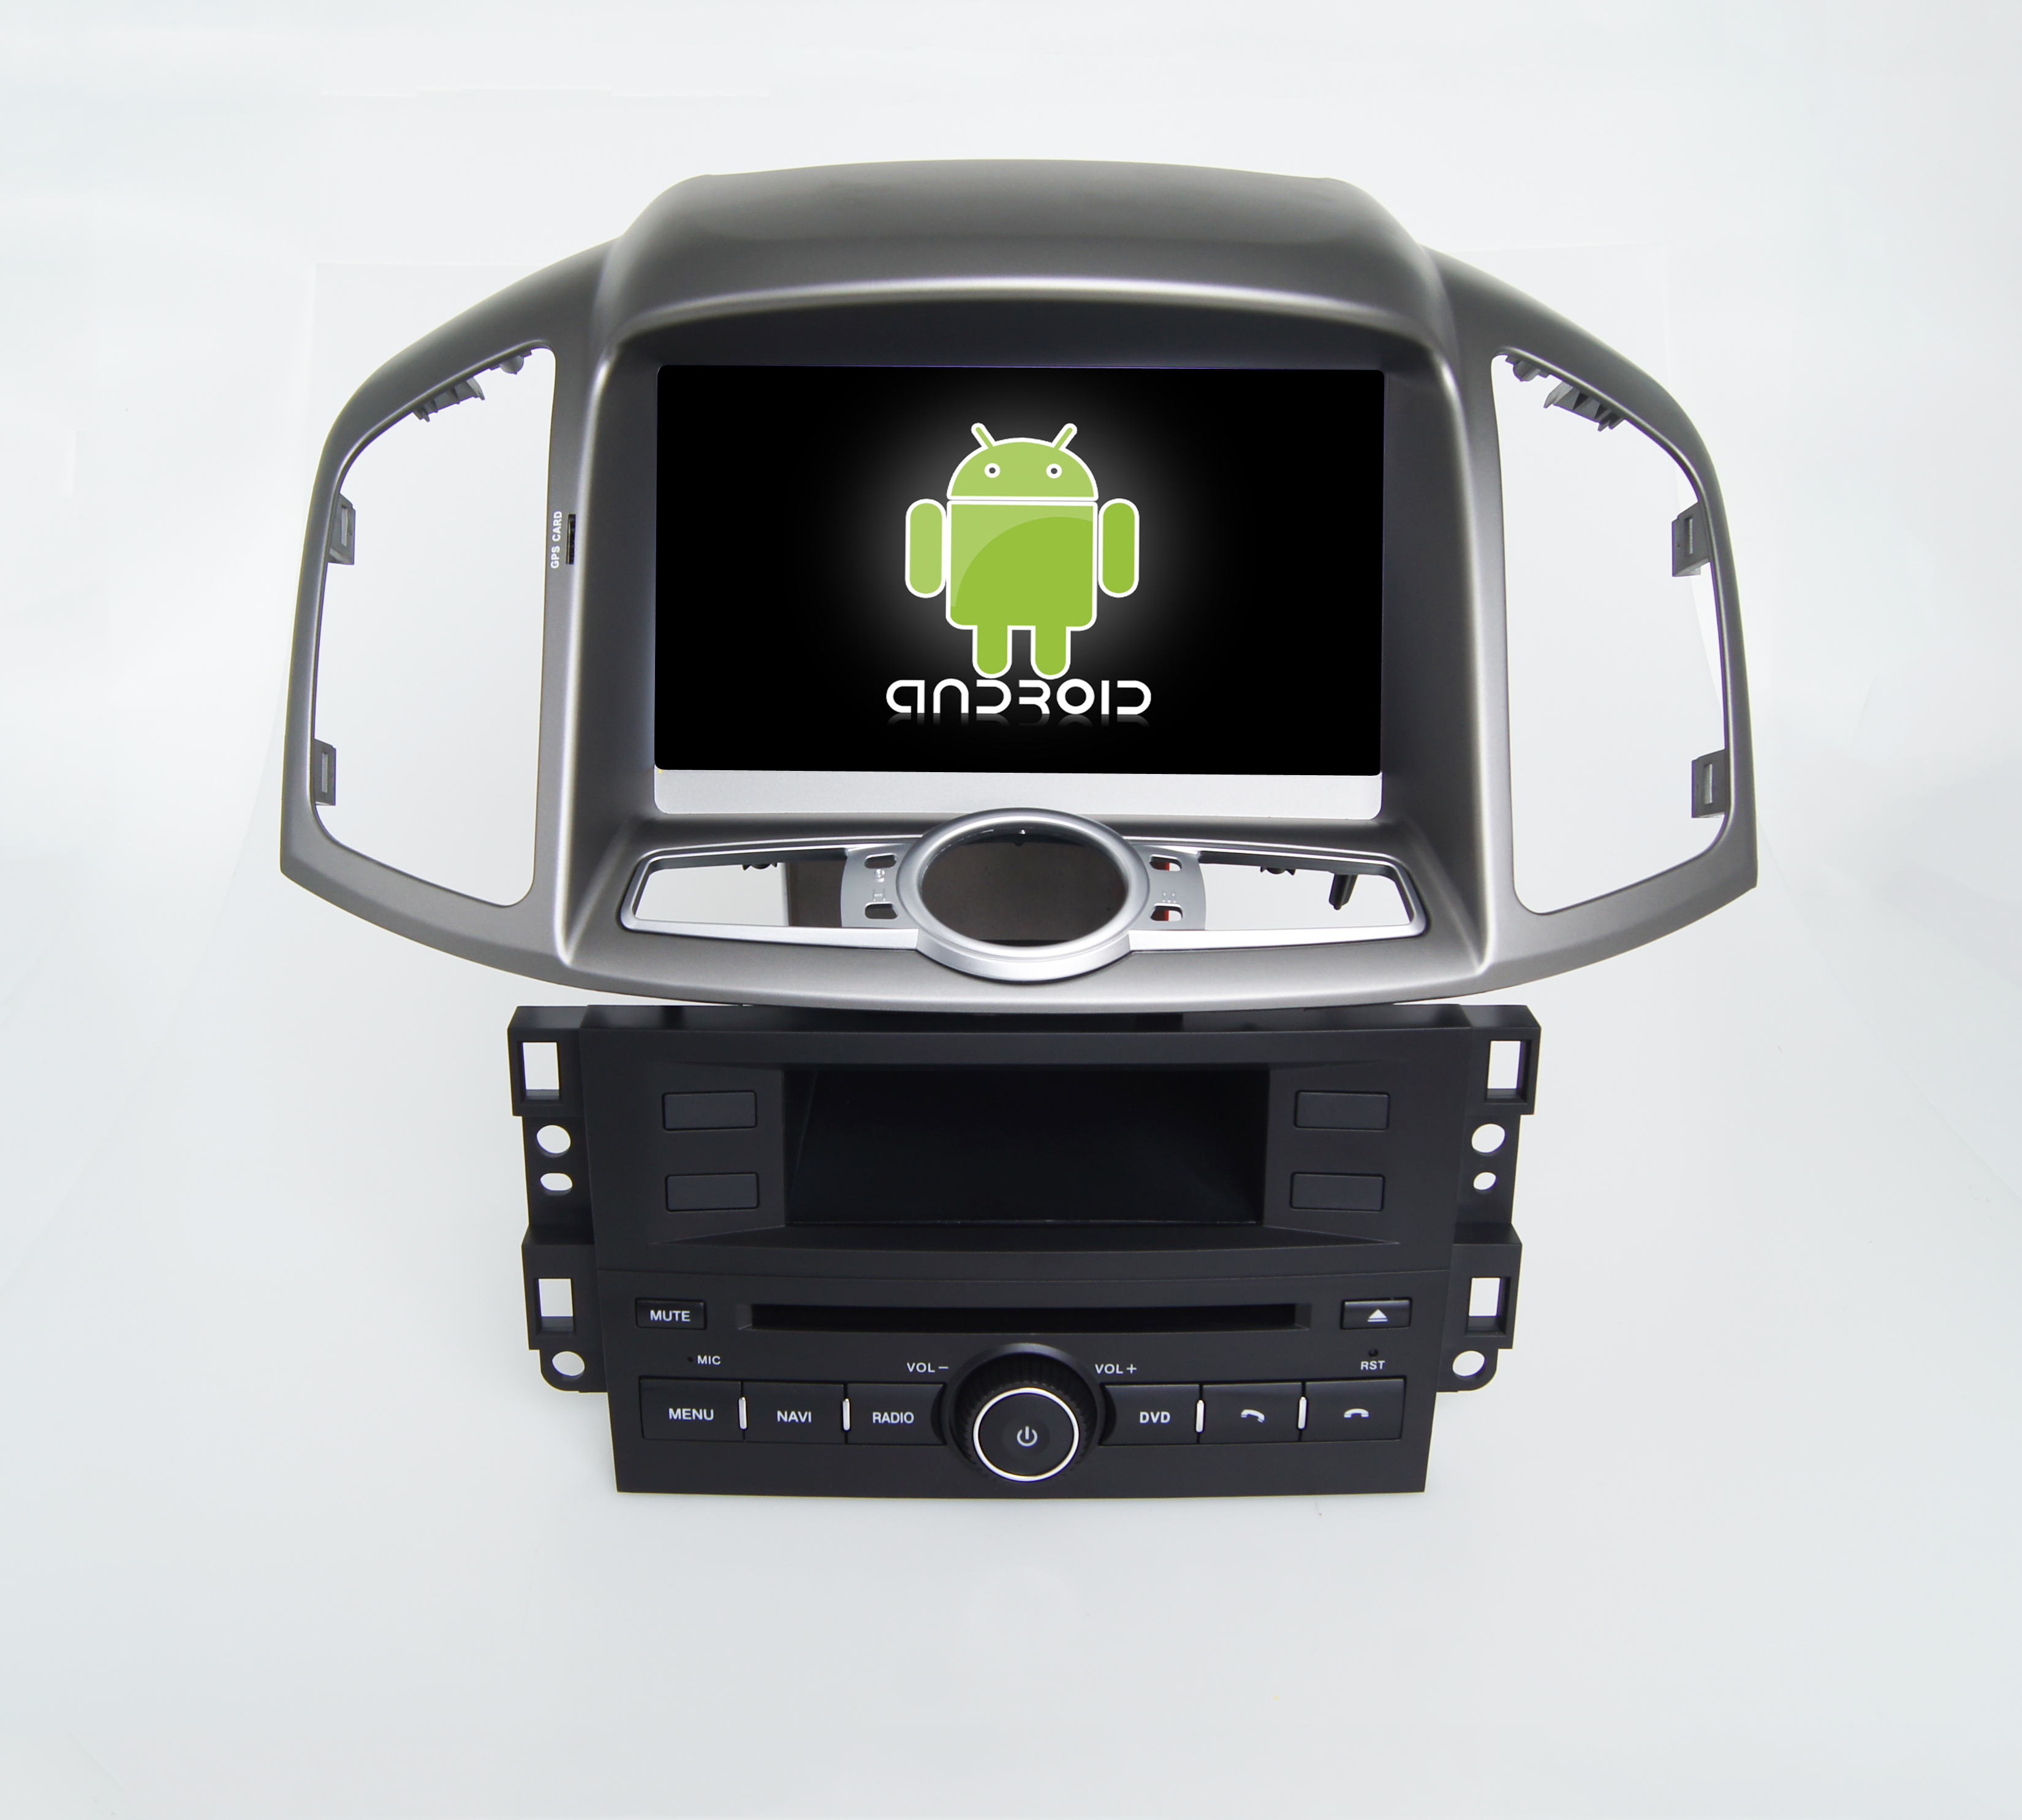 Штатная магнитола CARMEDIA КR-8030-T8 для Chevrolet Captiva 2011-2015 Android 7.1.2 k1 android 5 1 os smart watch phone mtk6580 512mb 8gb support wifi sim card bluetooth gps smartwatch for ios android os